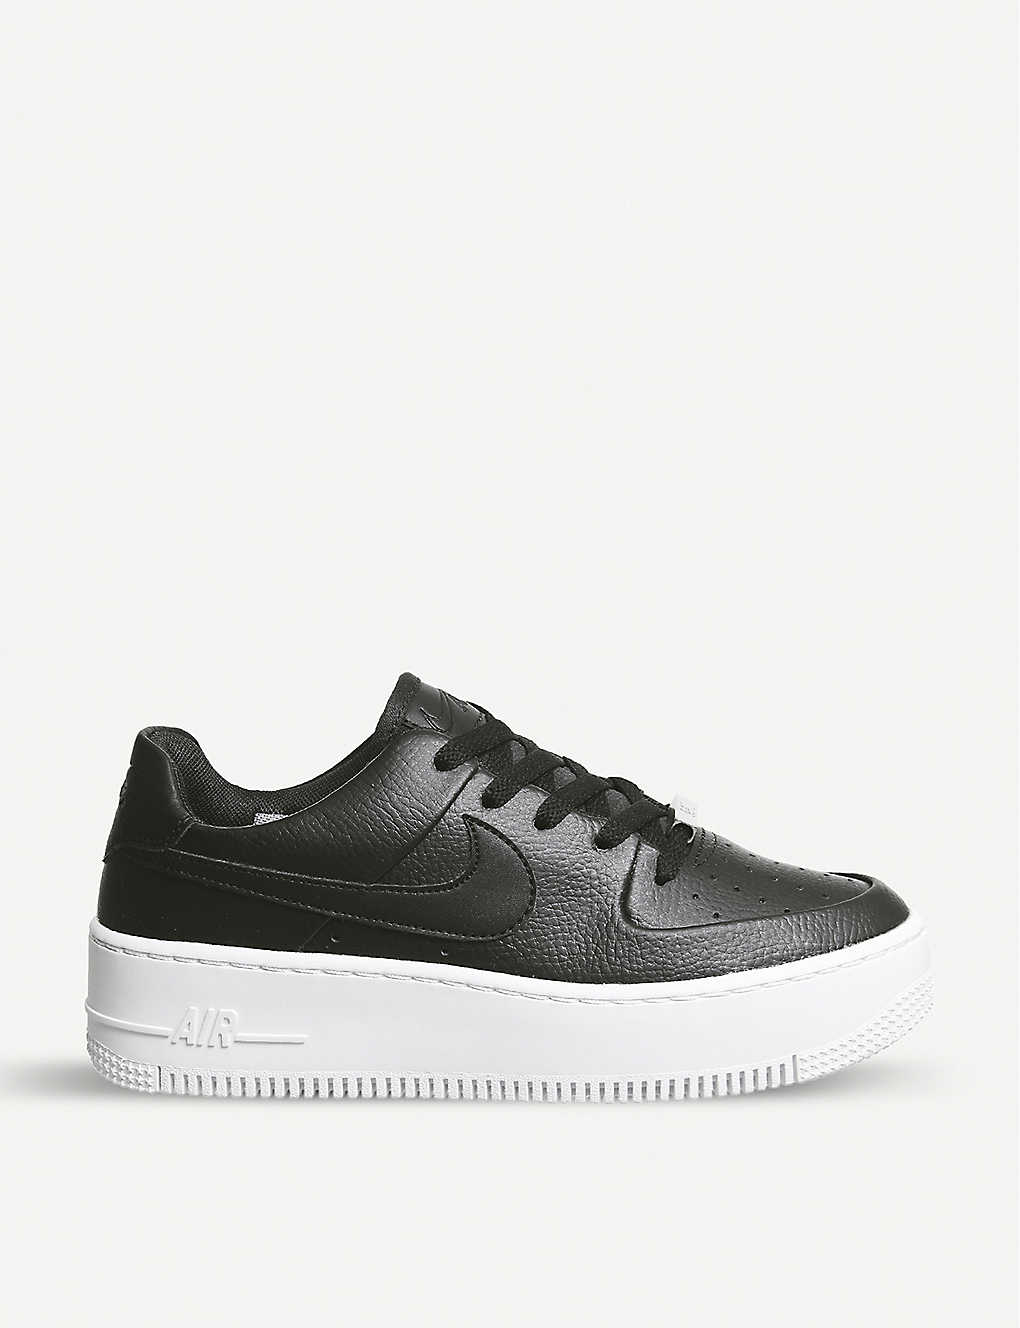 new product 425a8 85264 Air Force 1 Sage suede trainers - Black black white ...